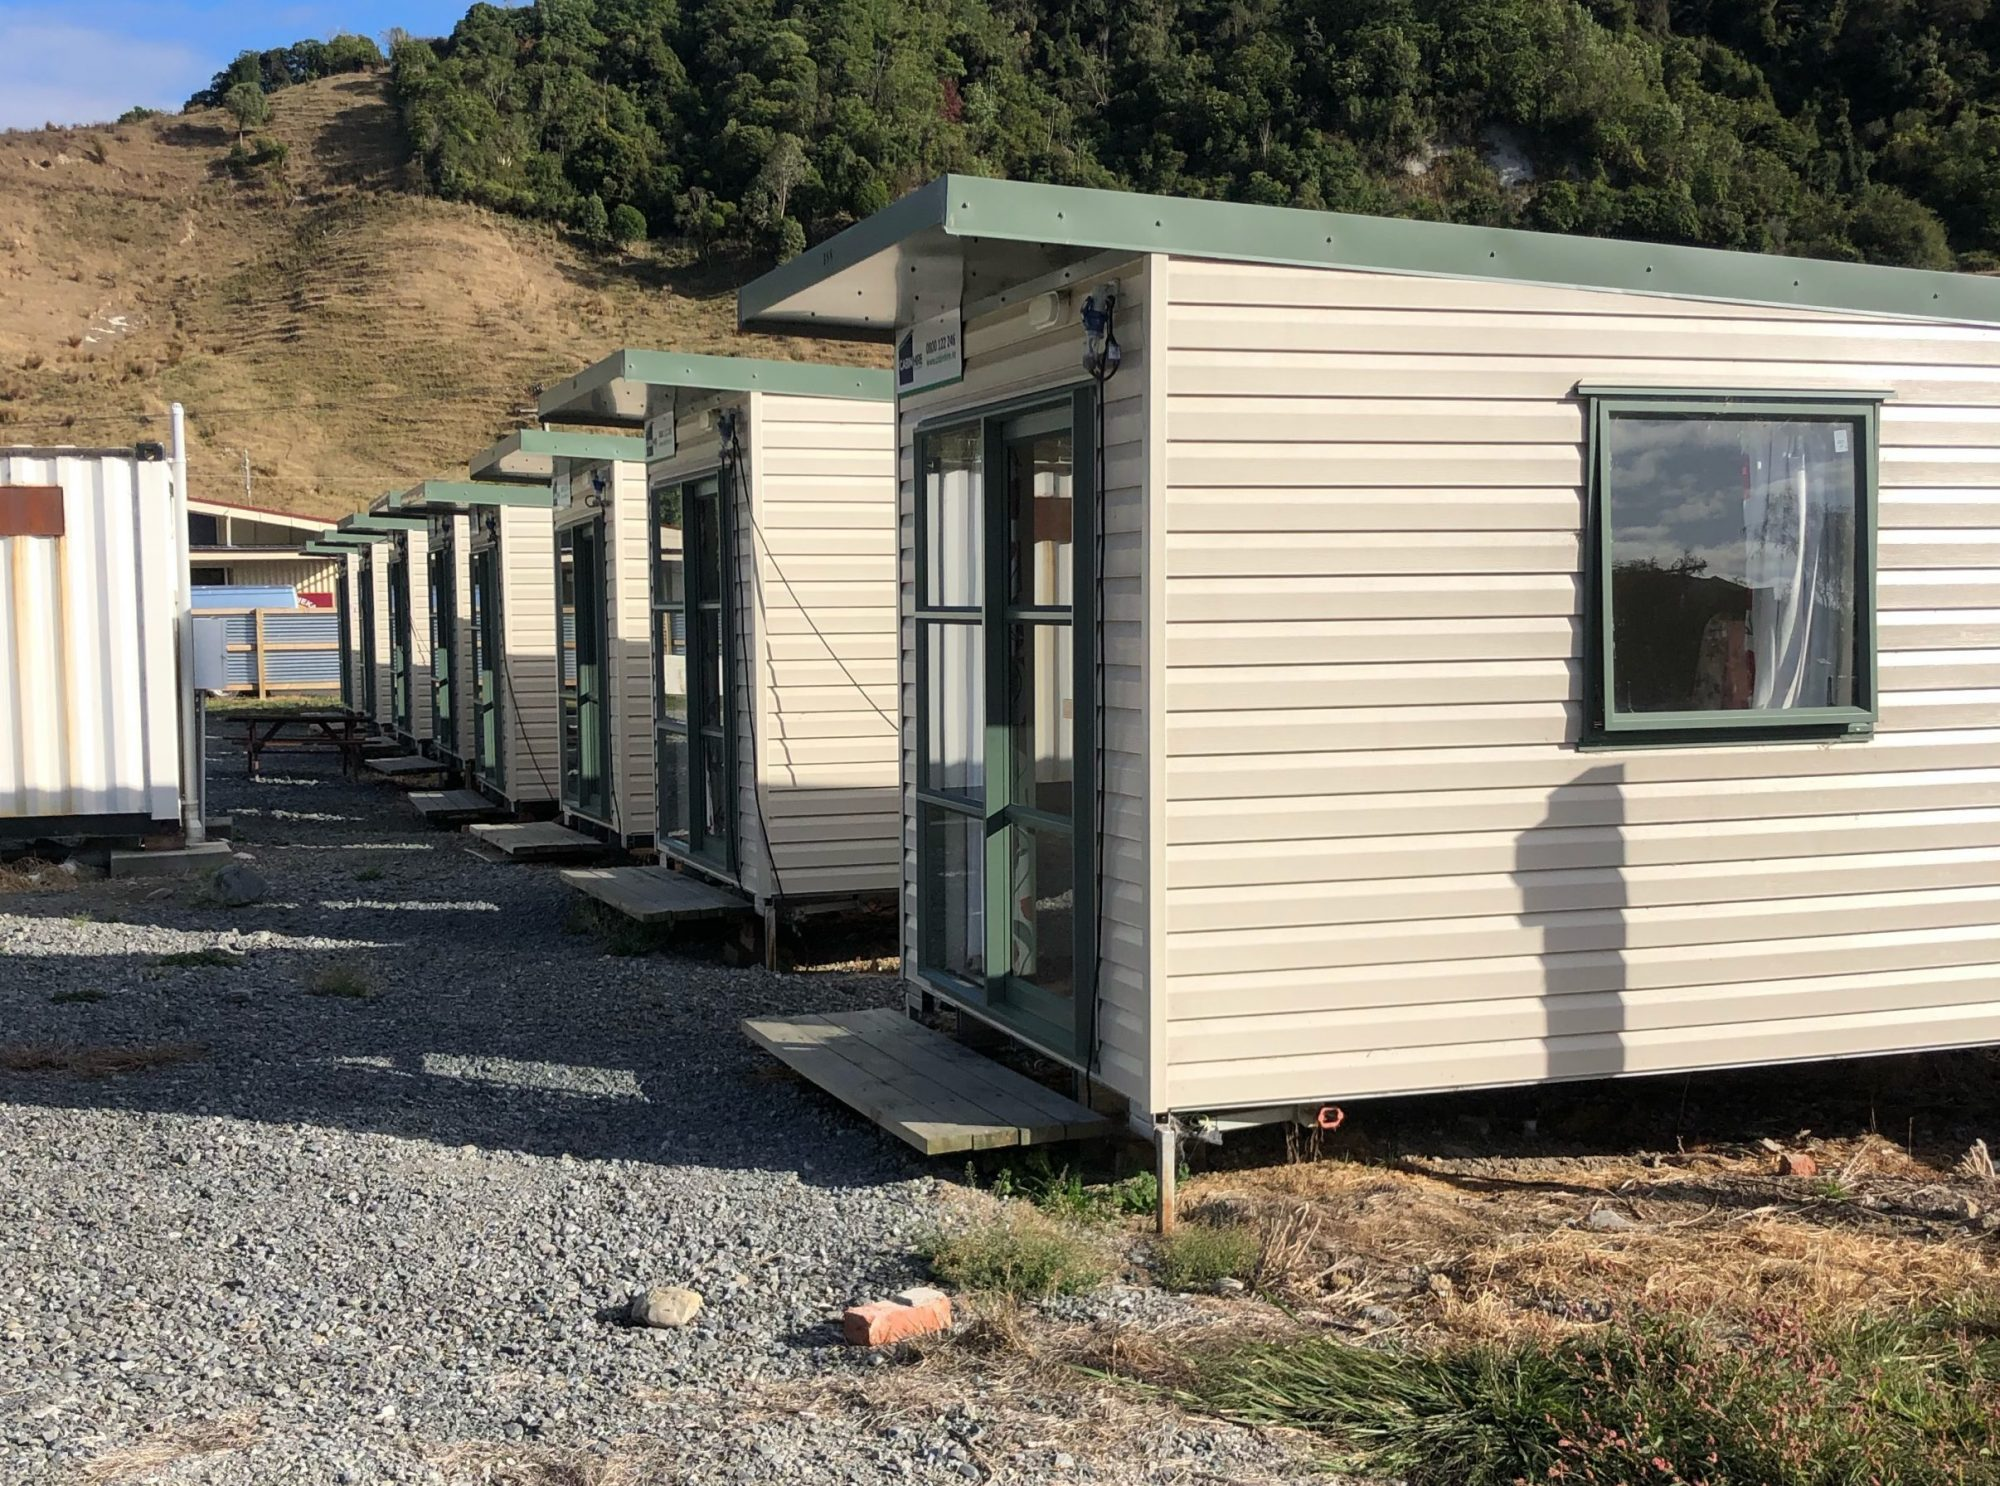 cabins in row